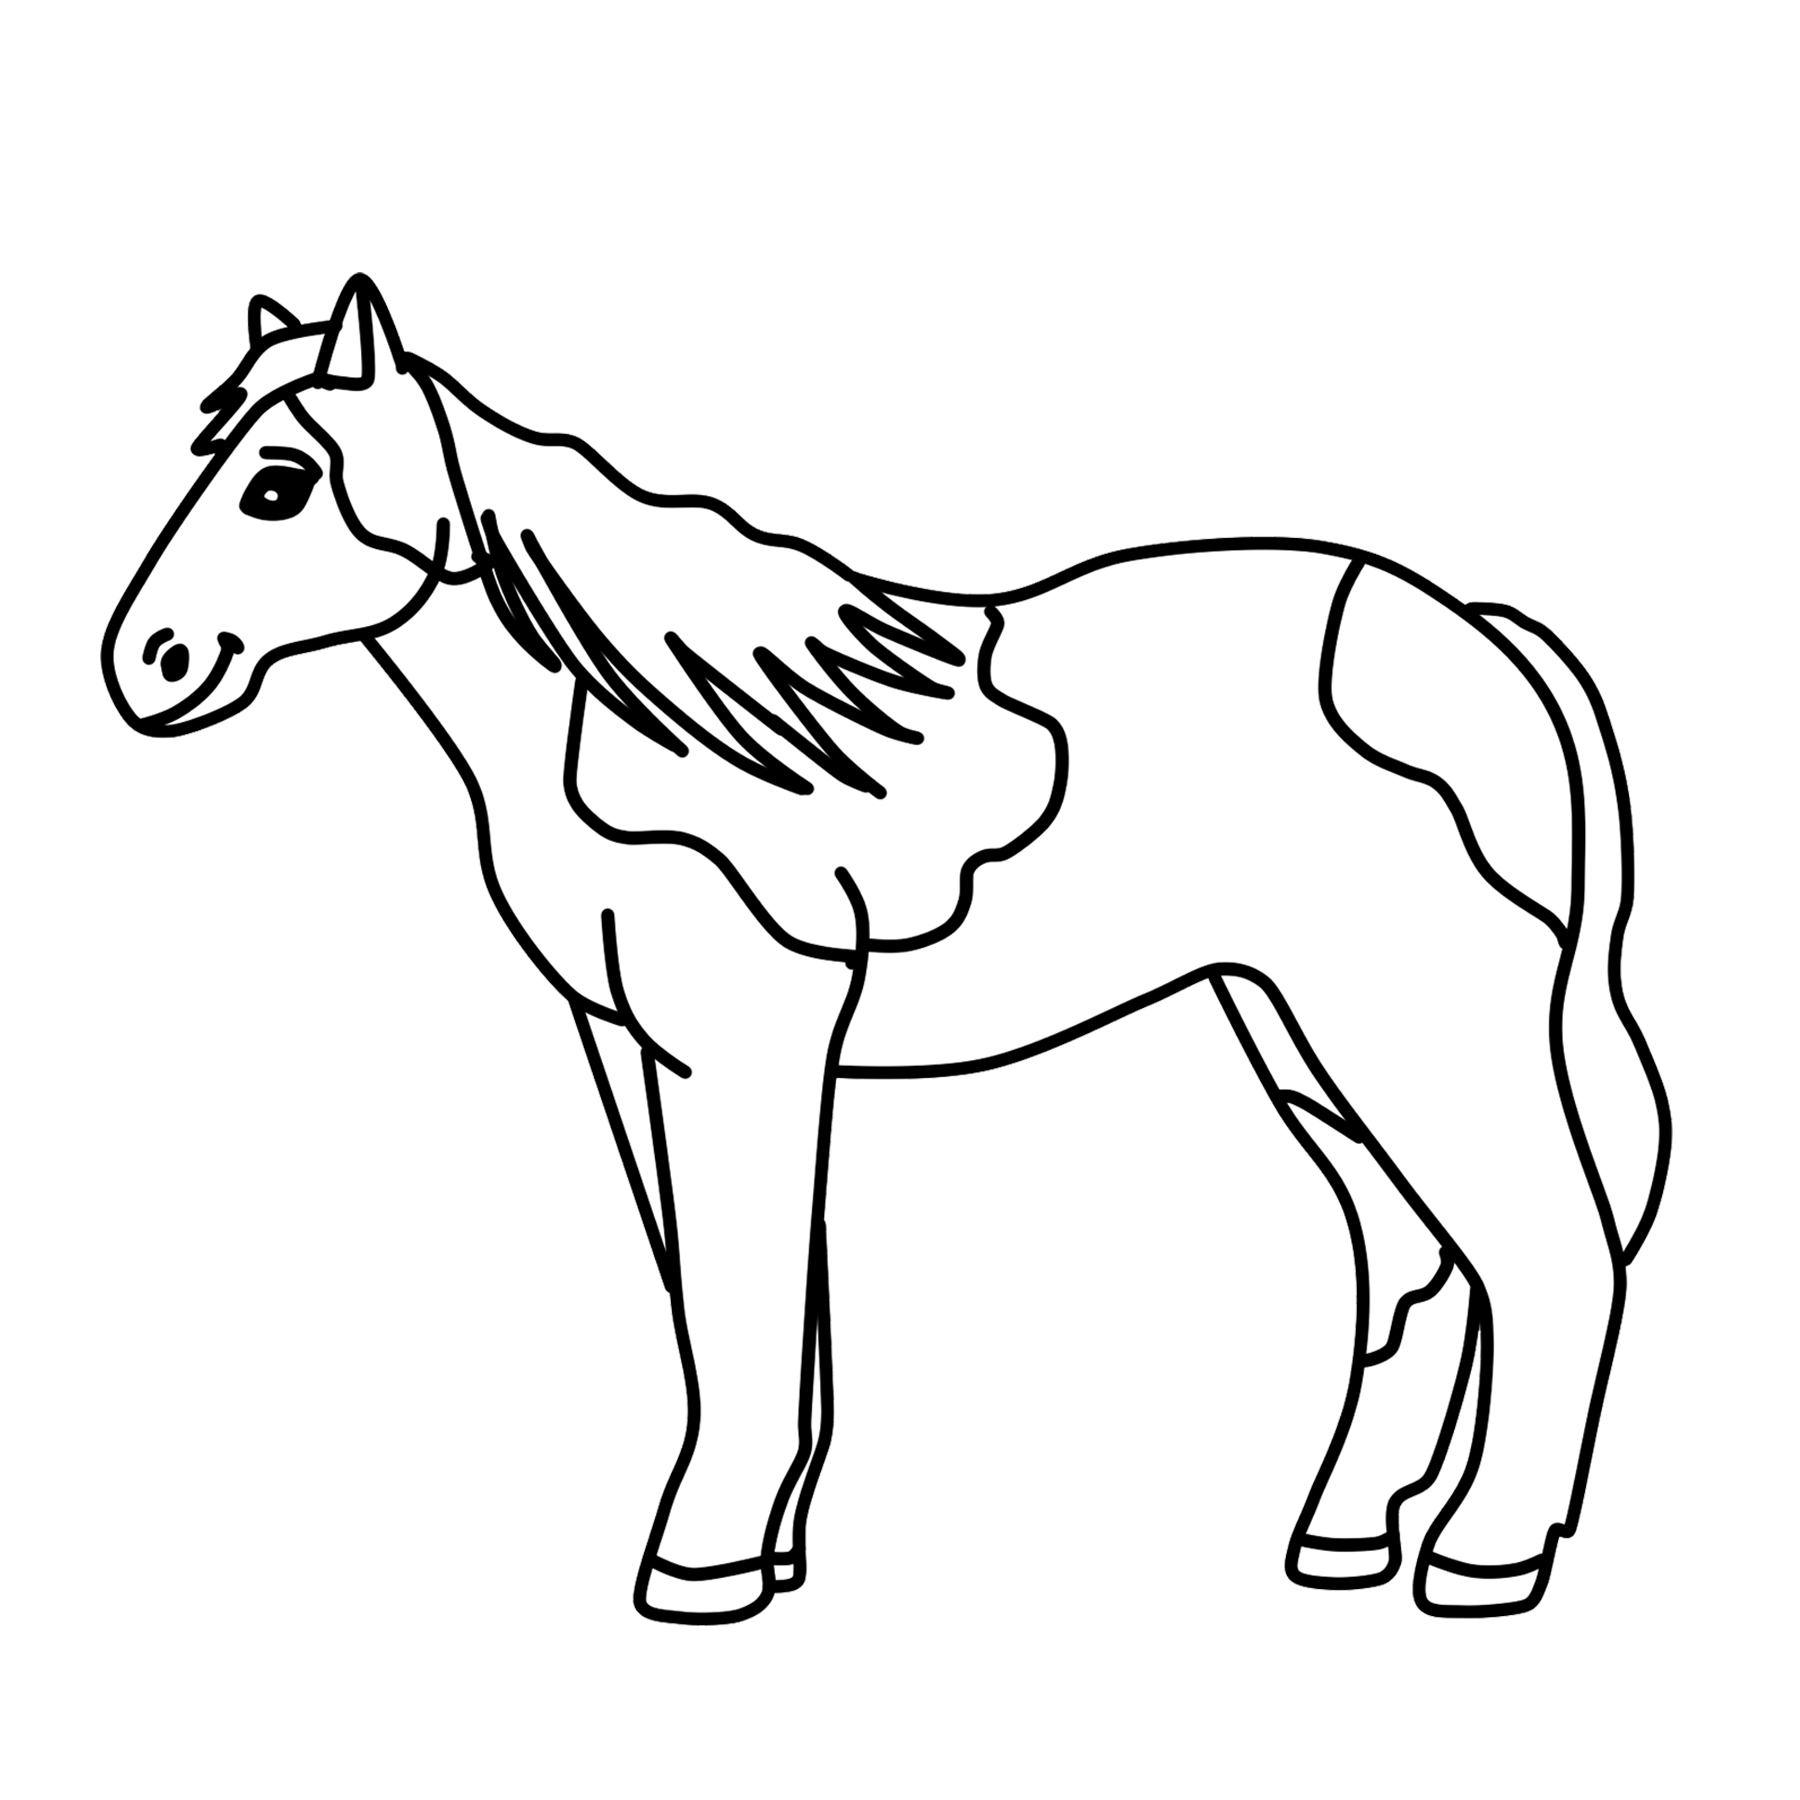 Spotted clipart pony graphic. Horse clip art black and white graphic black and white stock